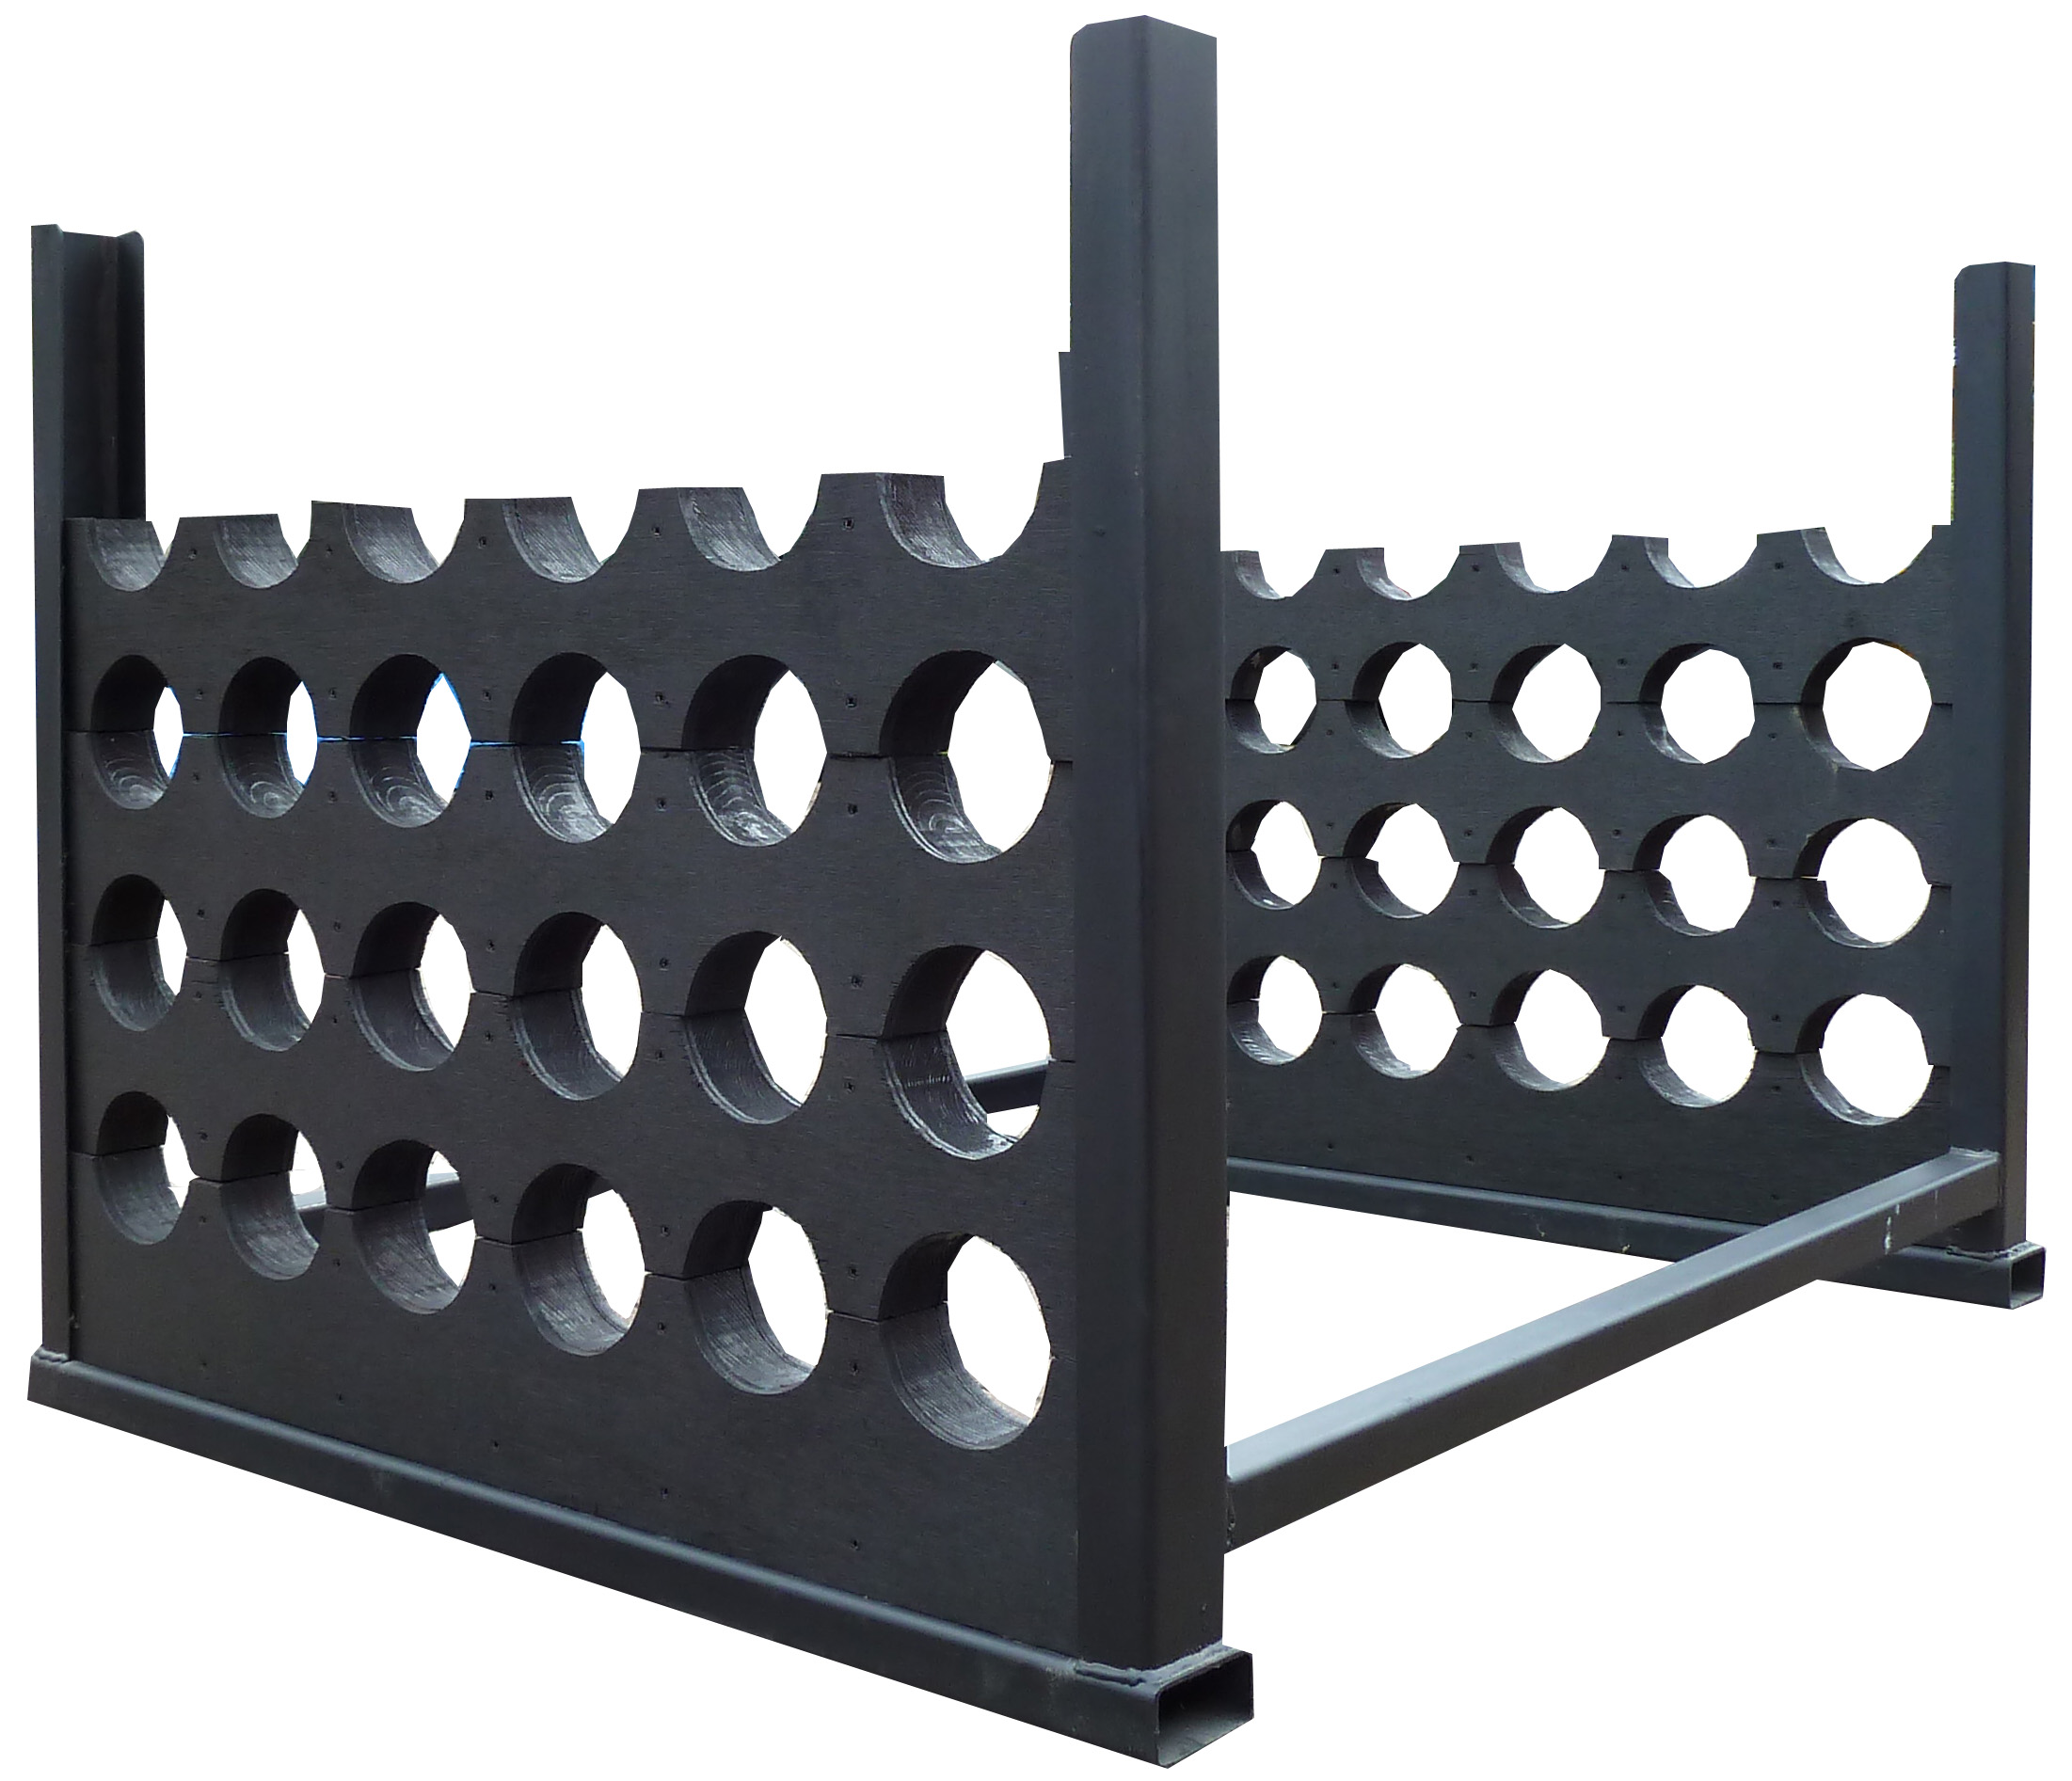 Equi rack with dividers for 24 poles in black